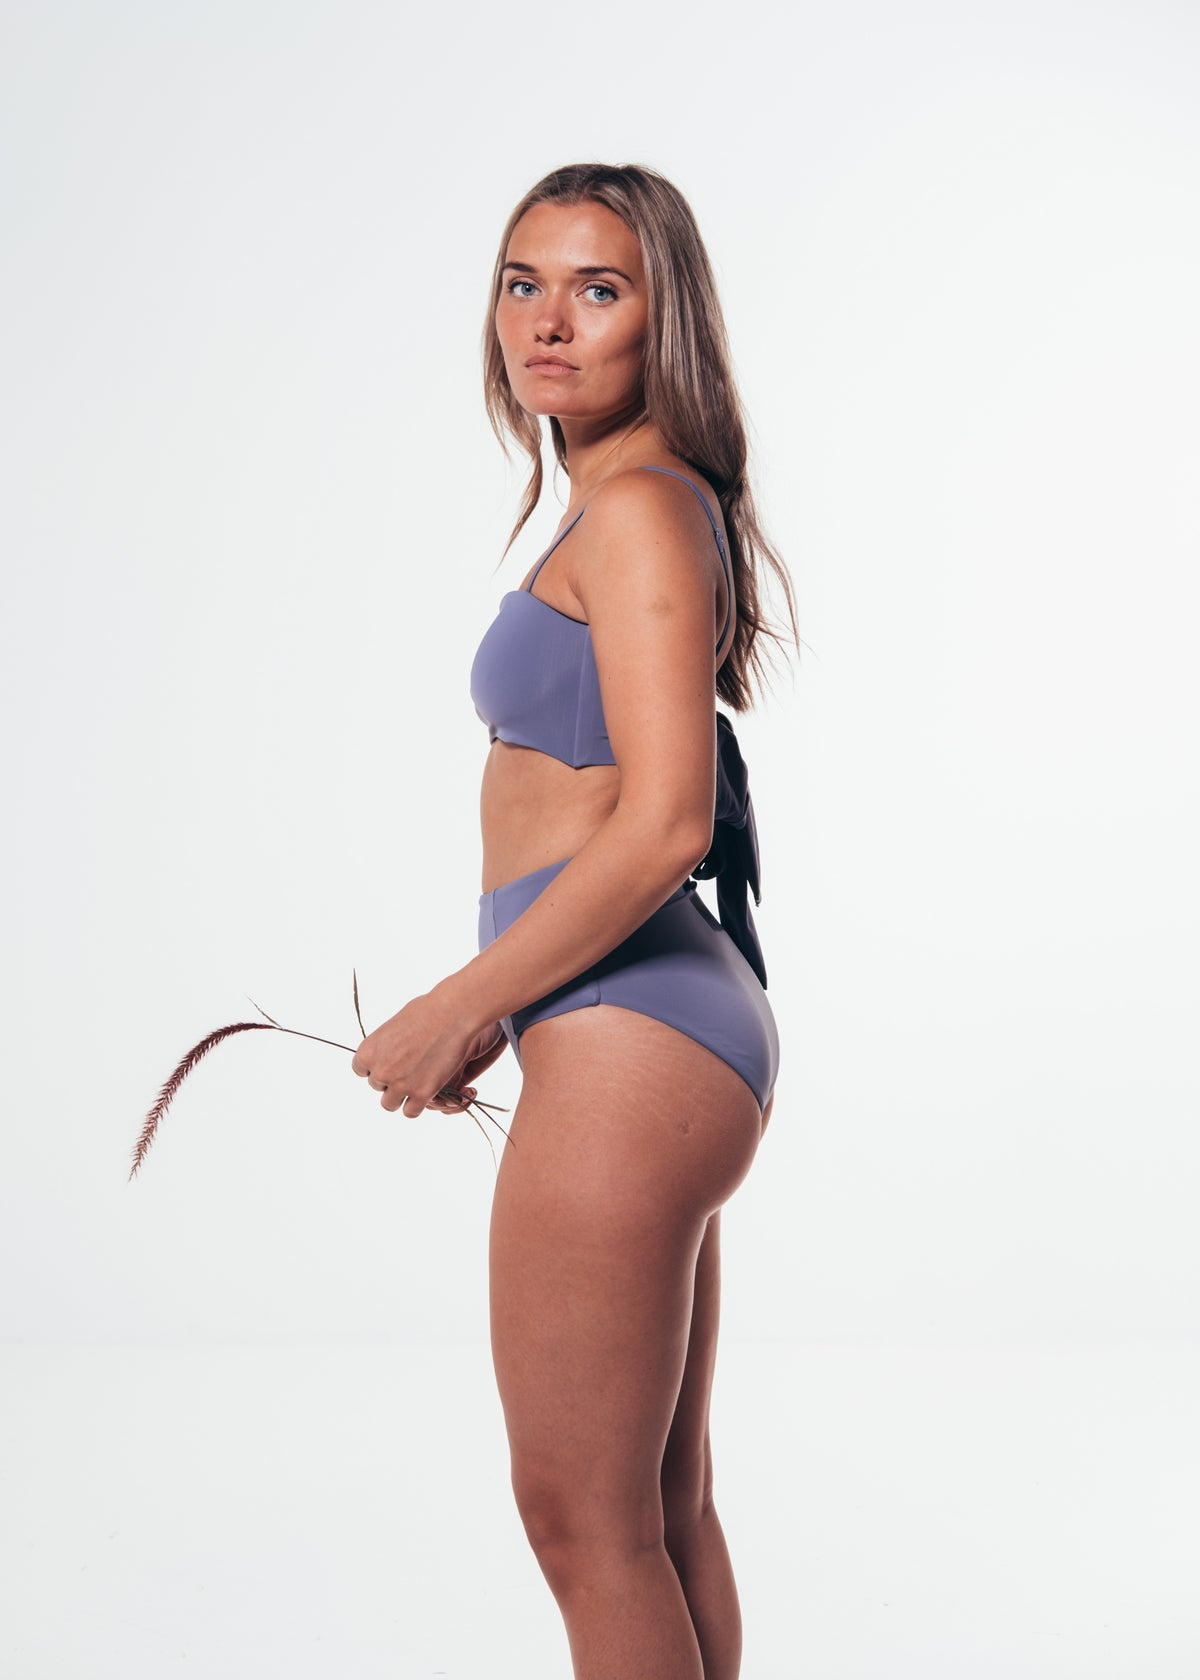 Ohoy swim purple Celeste bikini top made from Econyl regenerated plastics collected from the sea. Dansk mode lilla bikini top lavet af genbrugs plastic fra havet